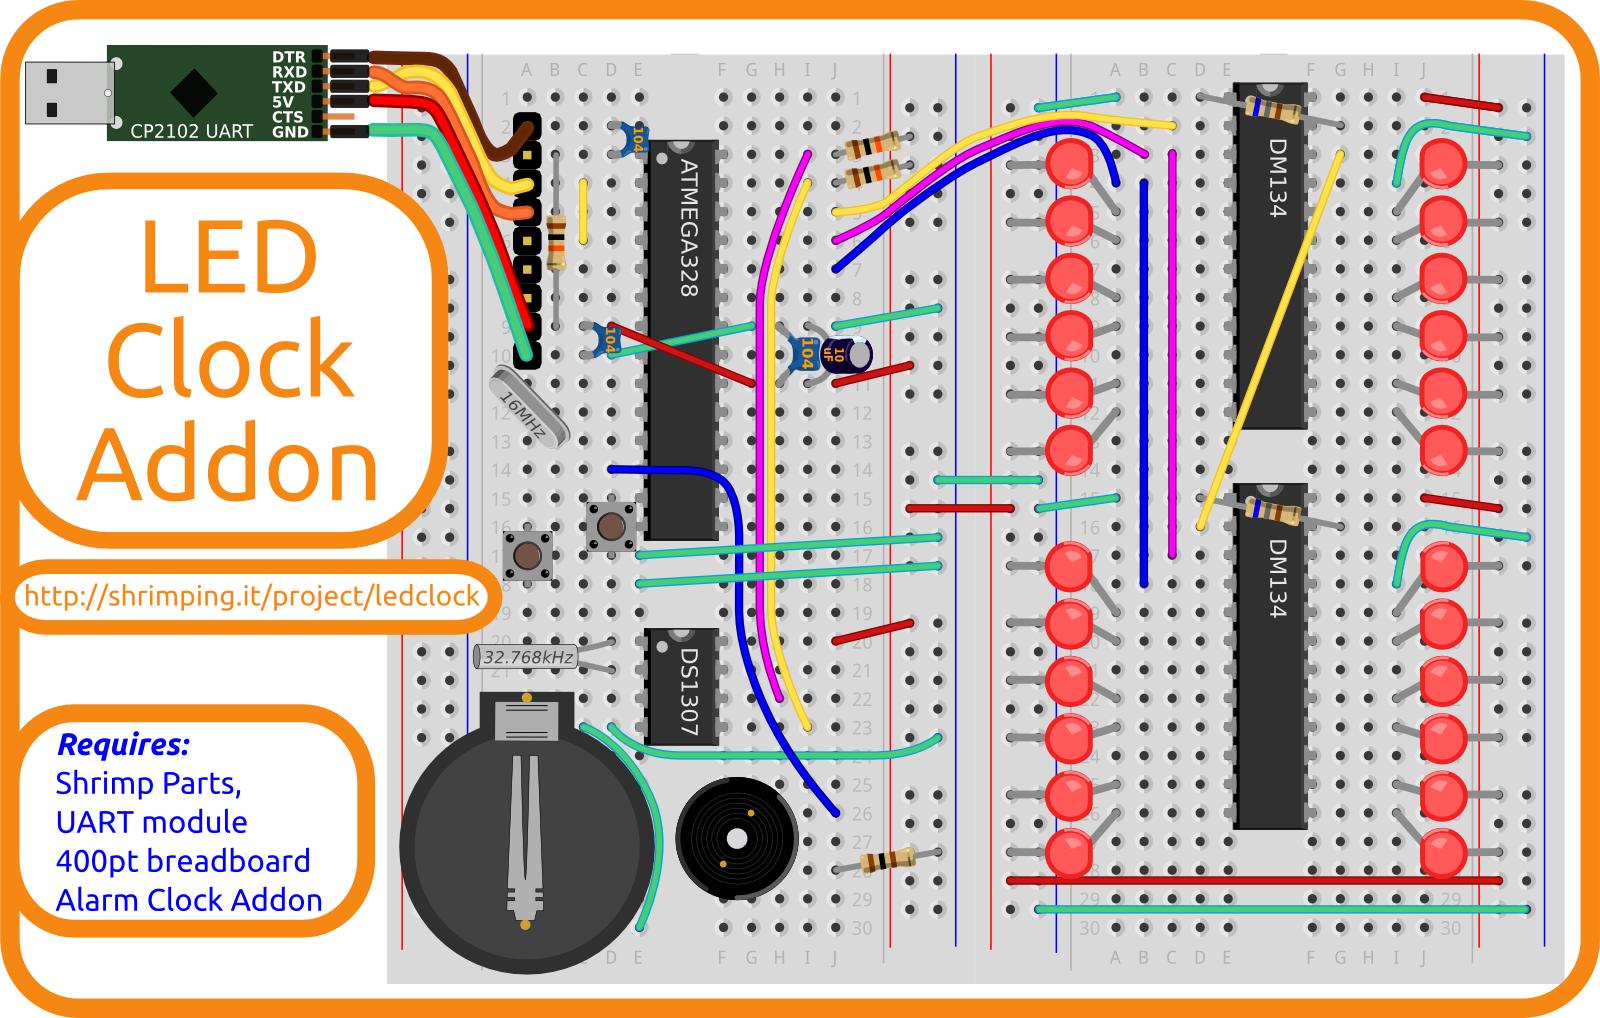 Build diagram for LED Clock